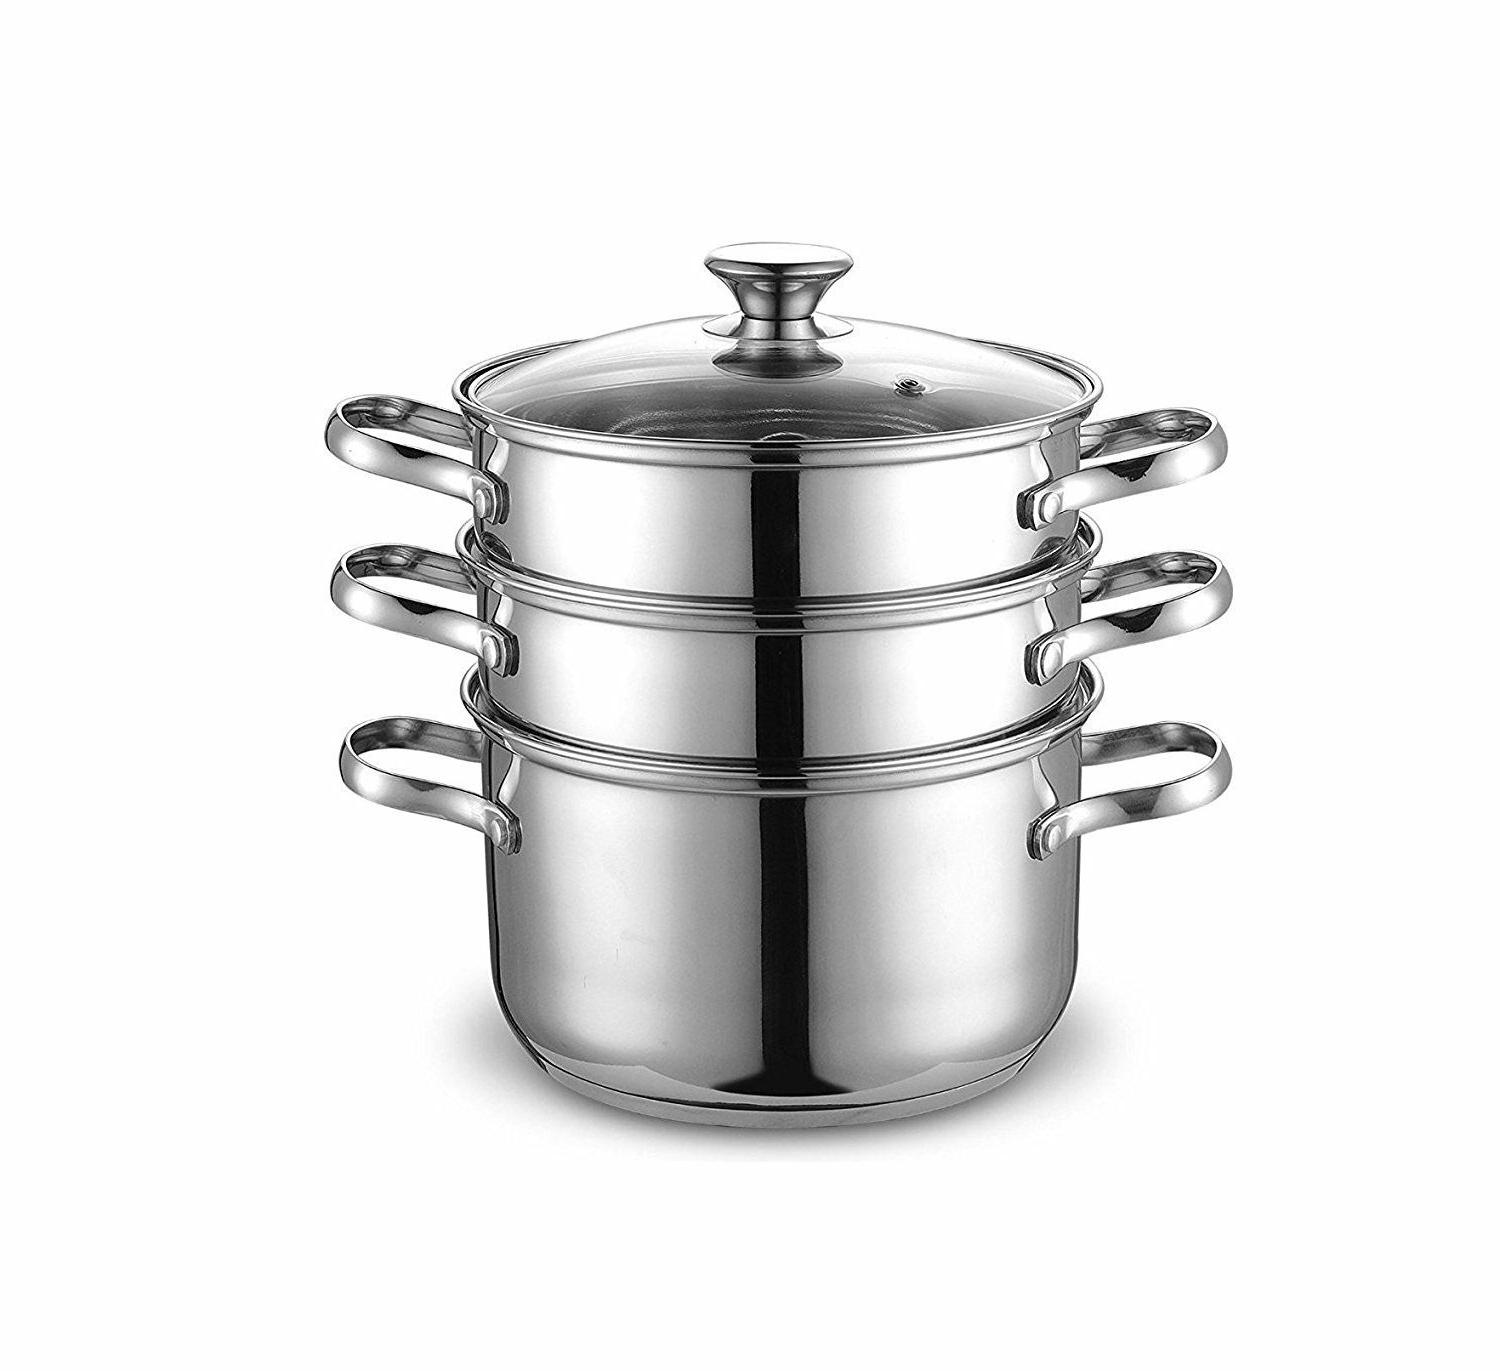 4 quart 8inch double boiler and steamer